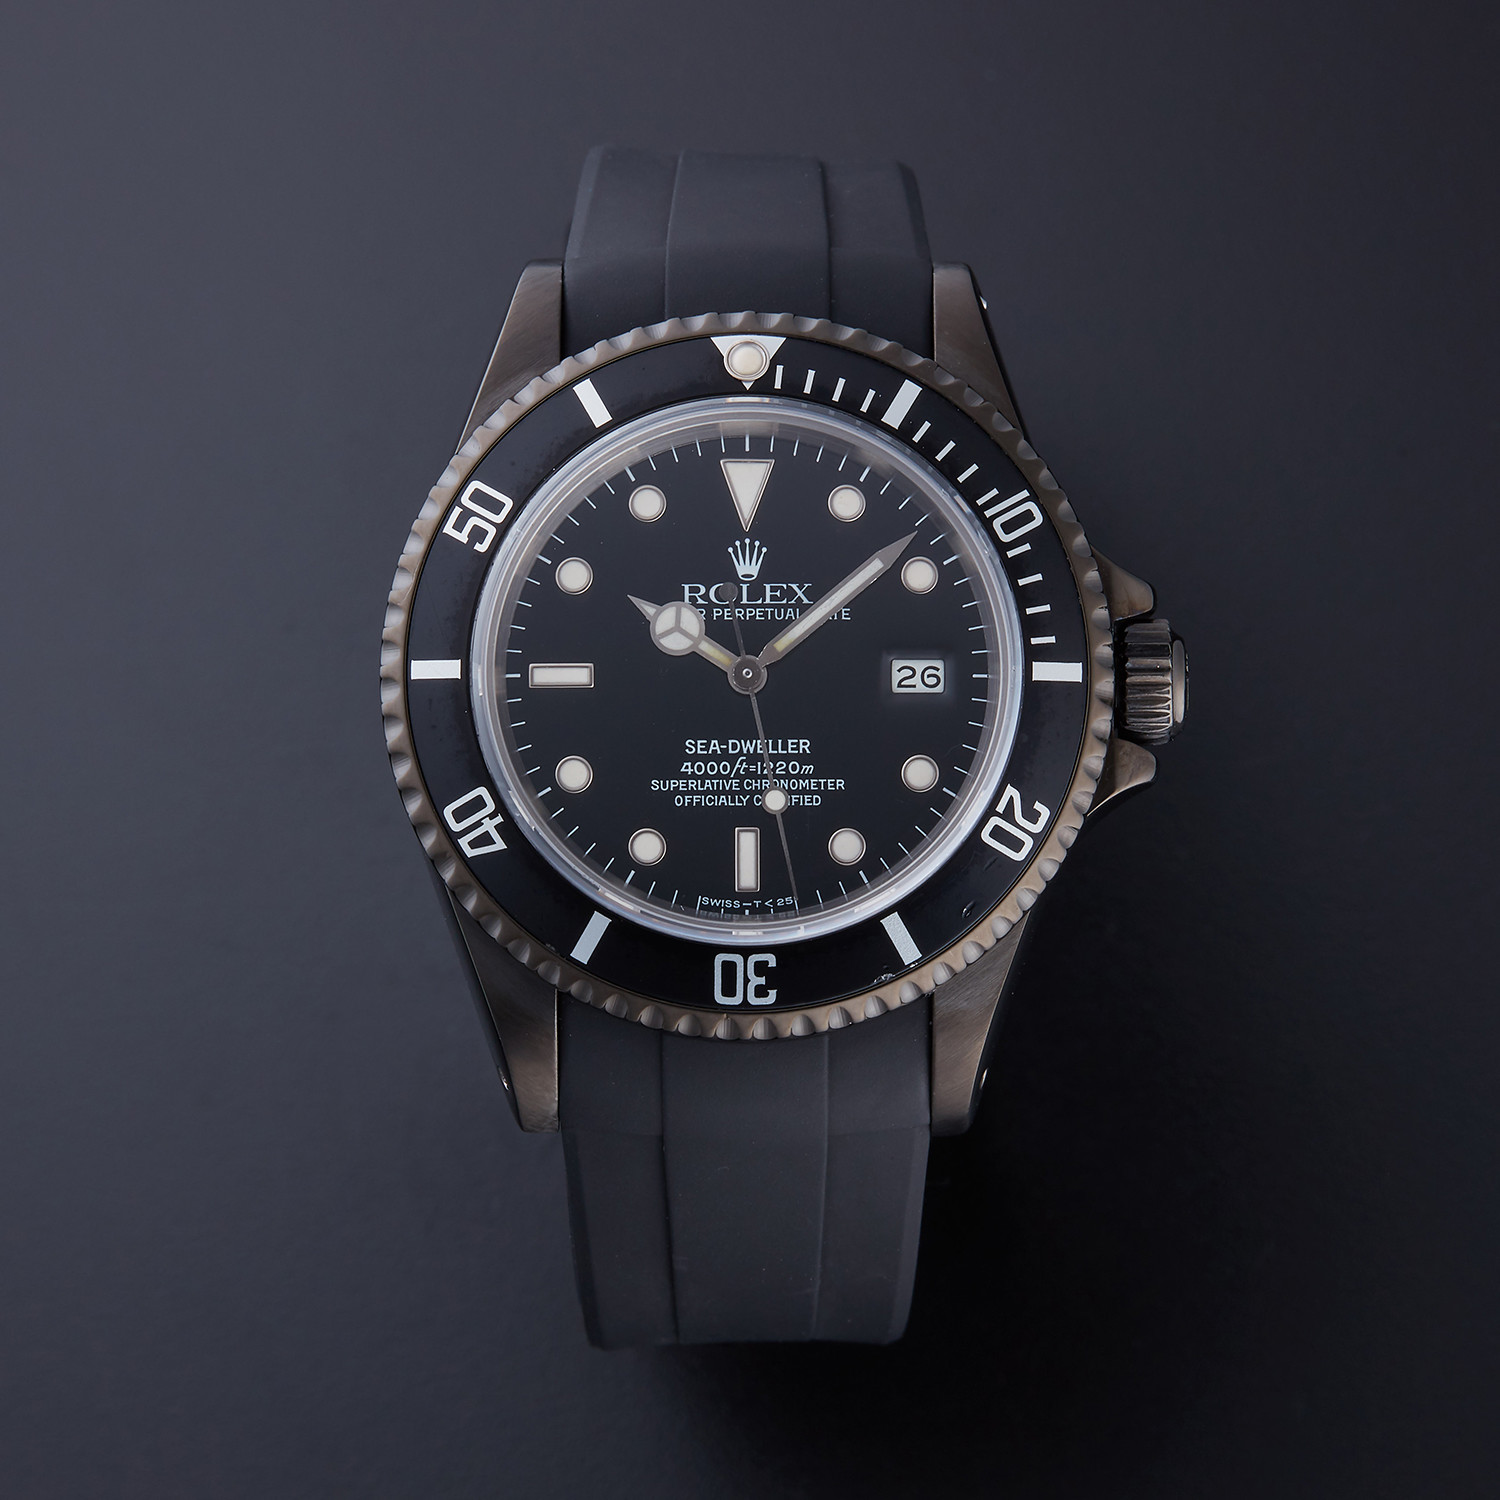 Rolex Seadweller Automatic 16600 Pre Owned With